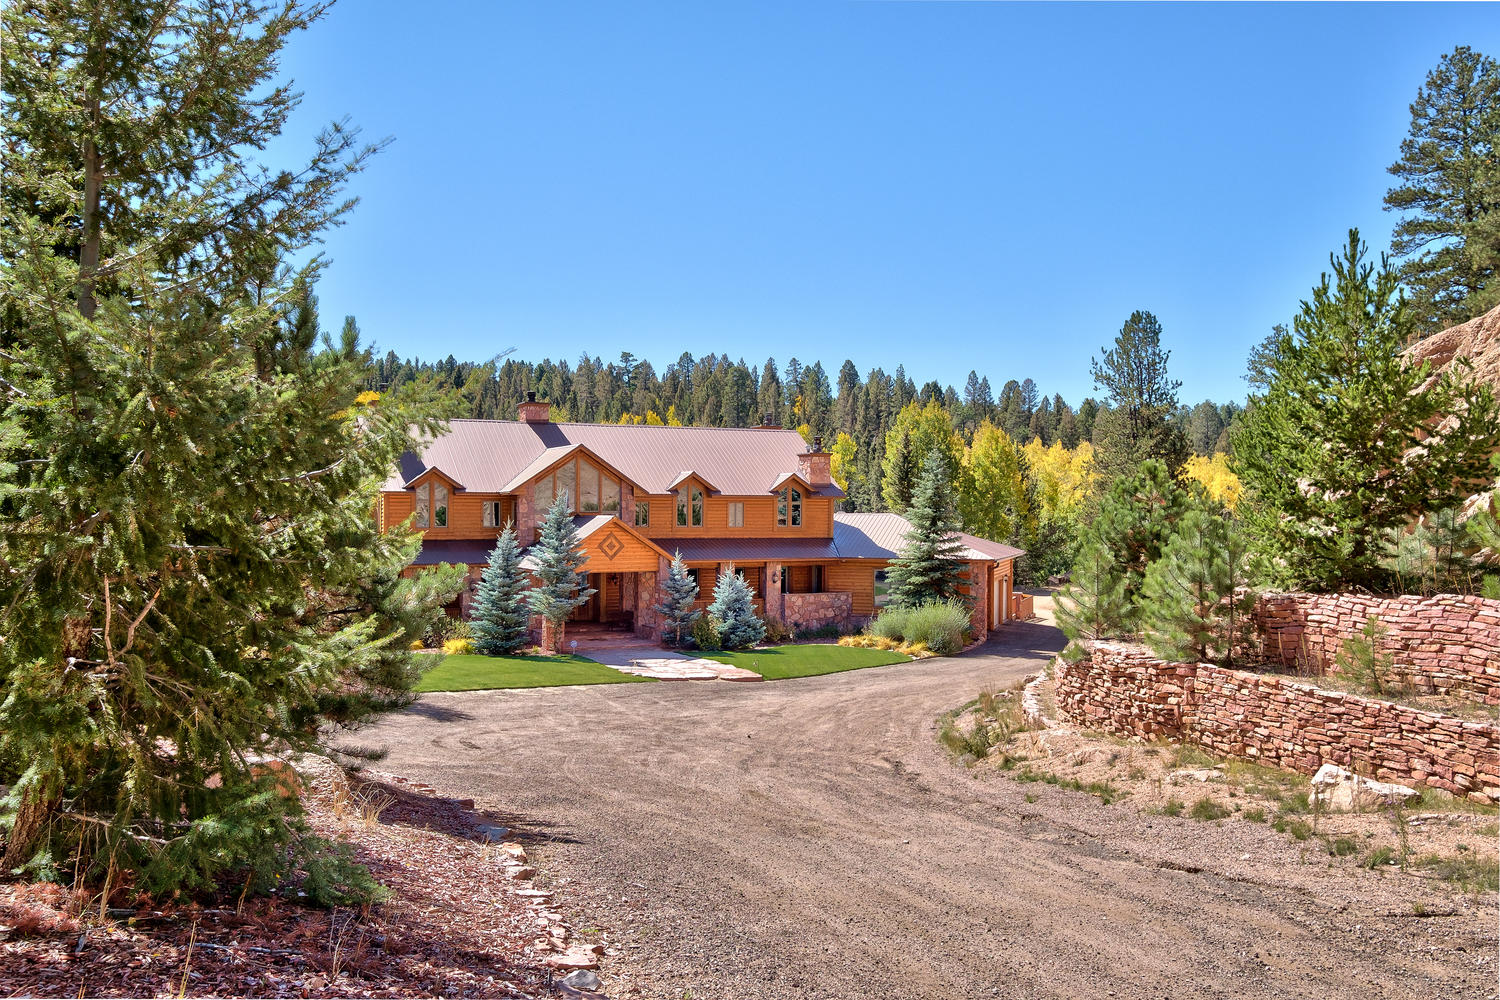 Single Family Home for Active at 10 Kutsu Ridge Rd Florissant, Colorado 80816 United States